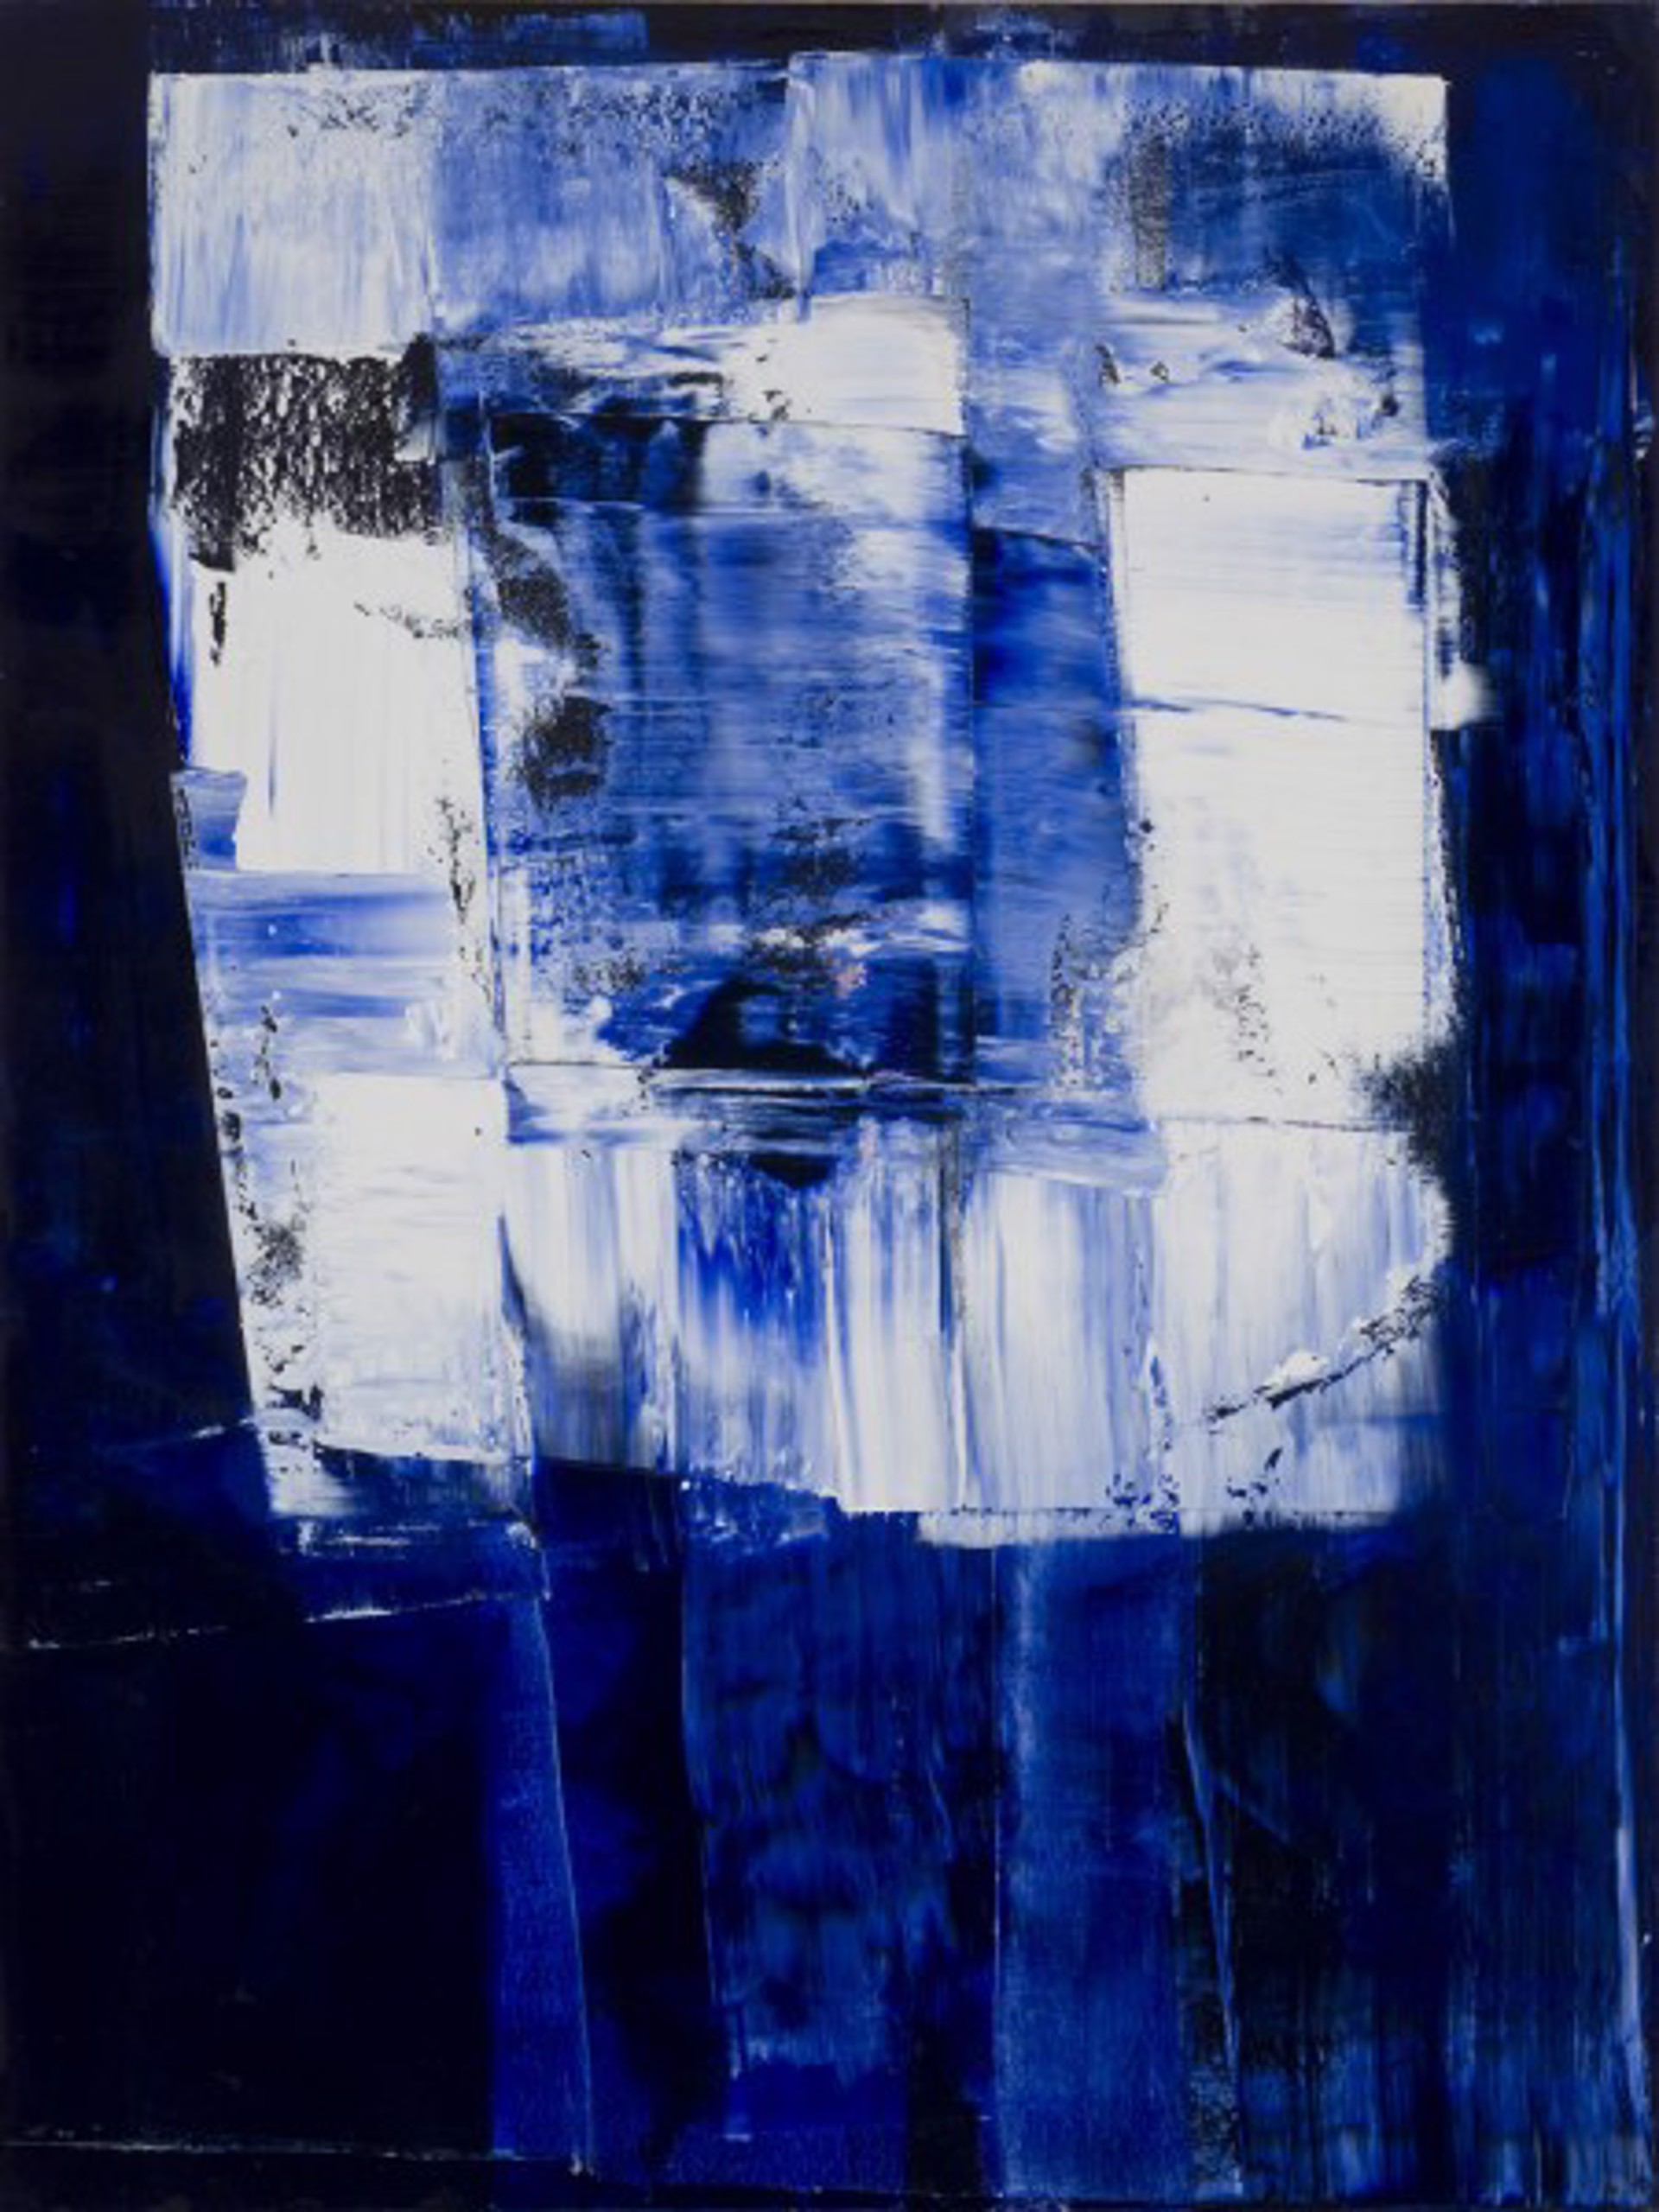 Blue-White No. 2 by William Song